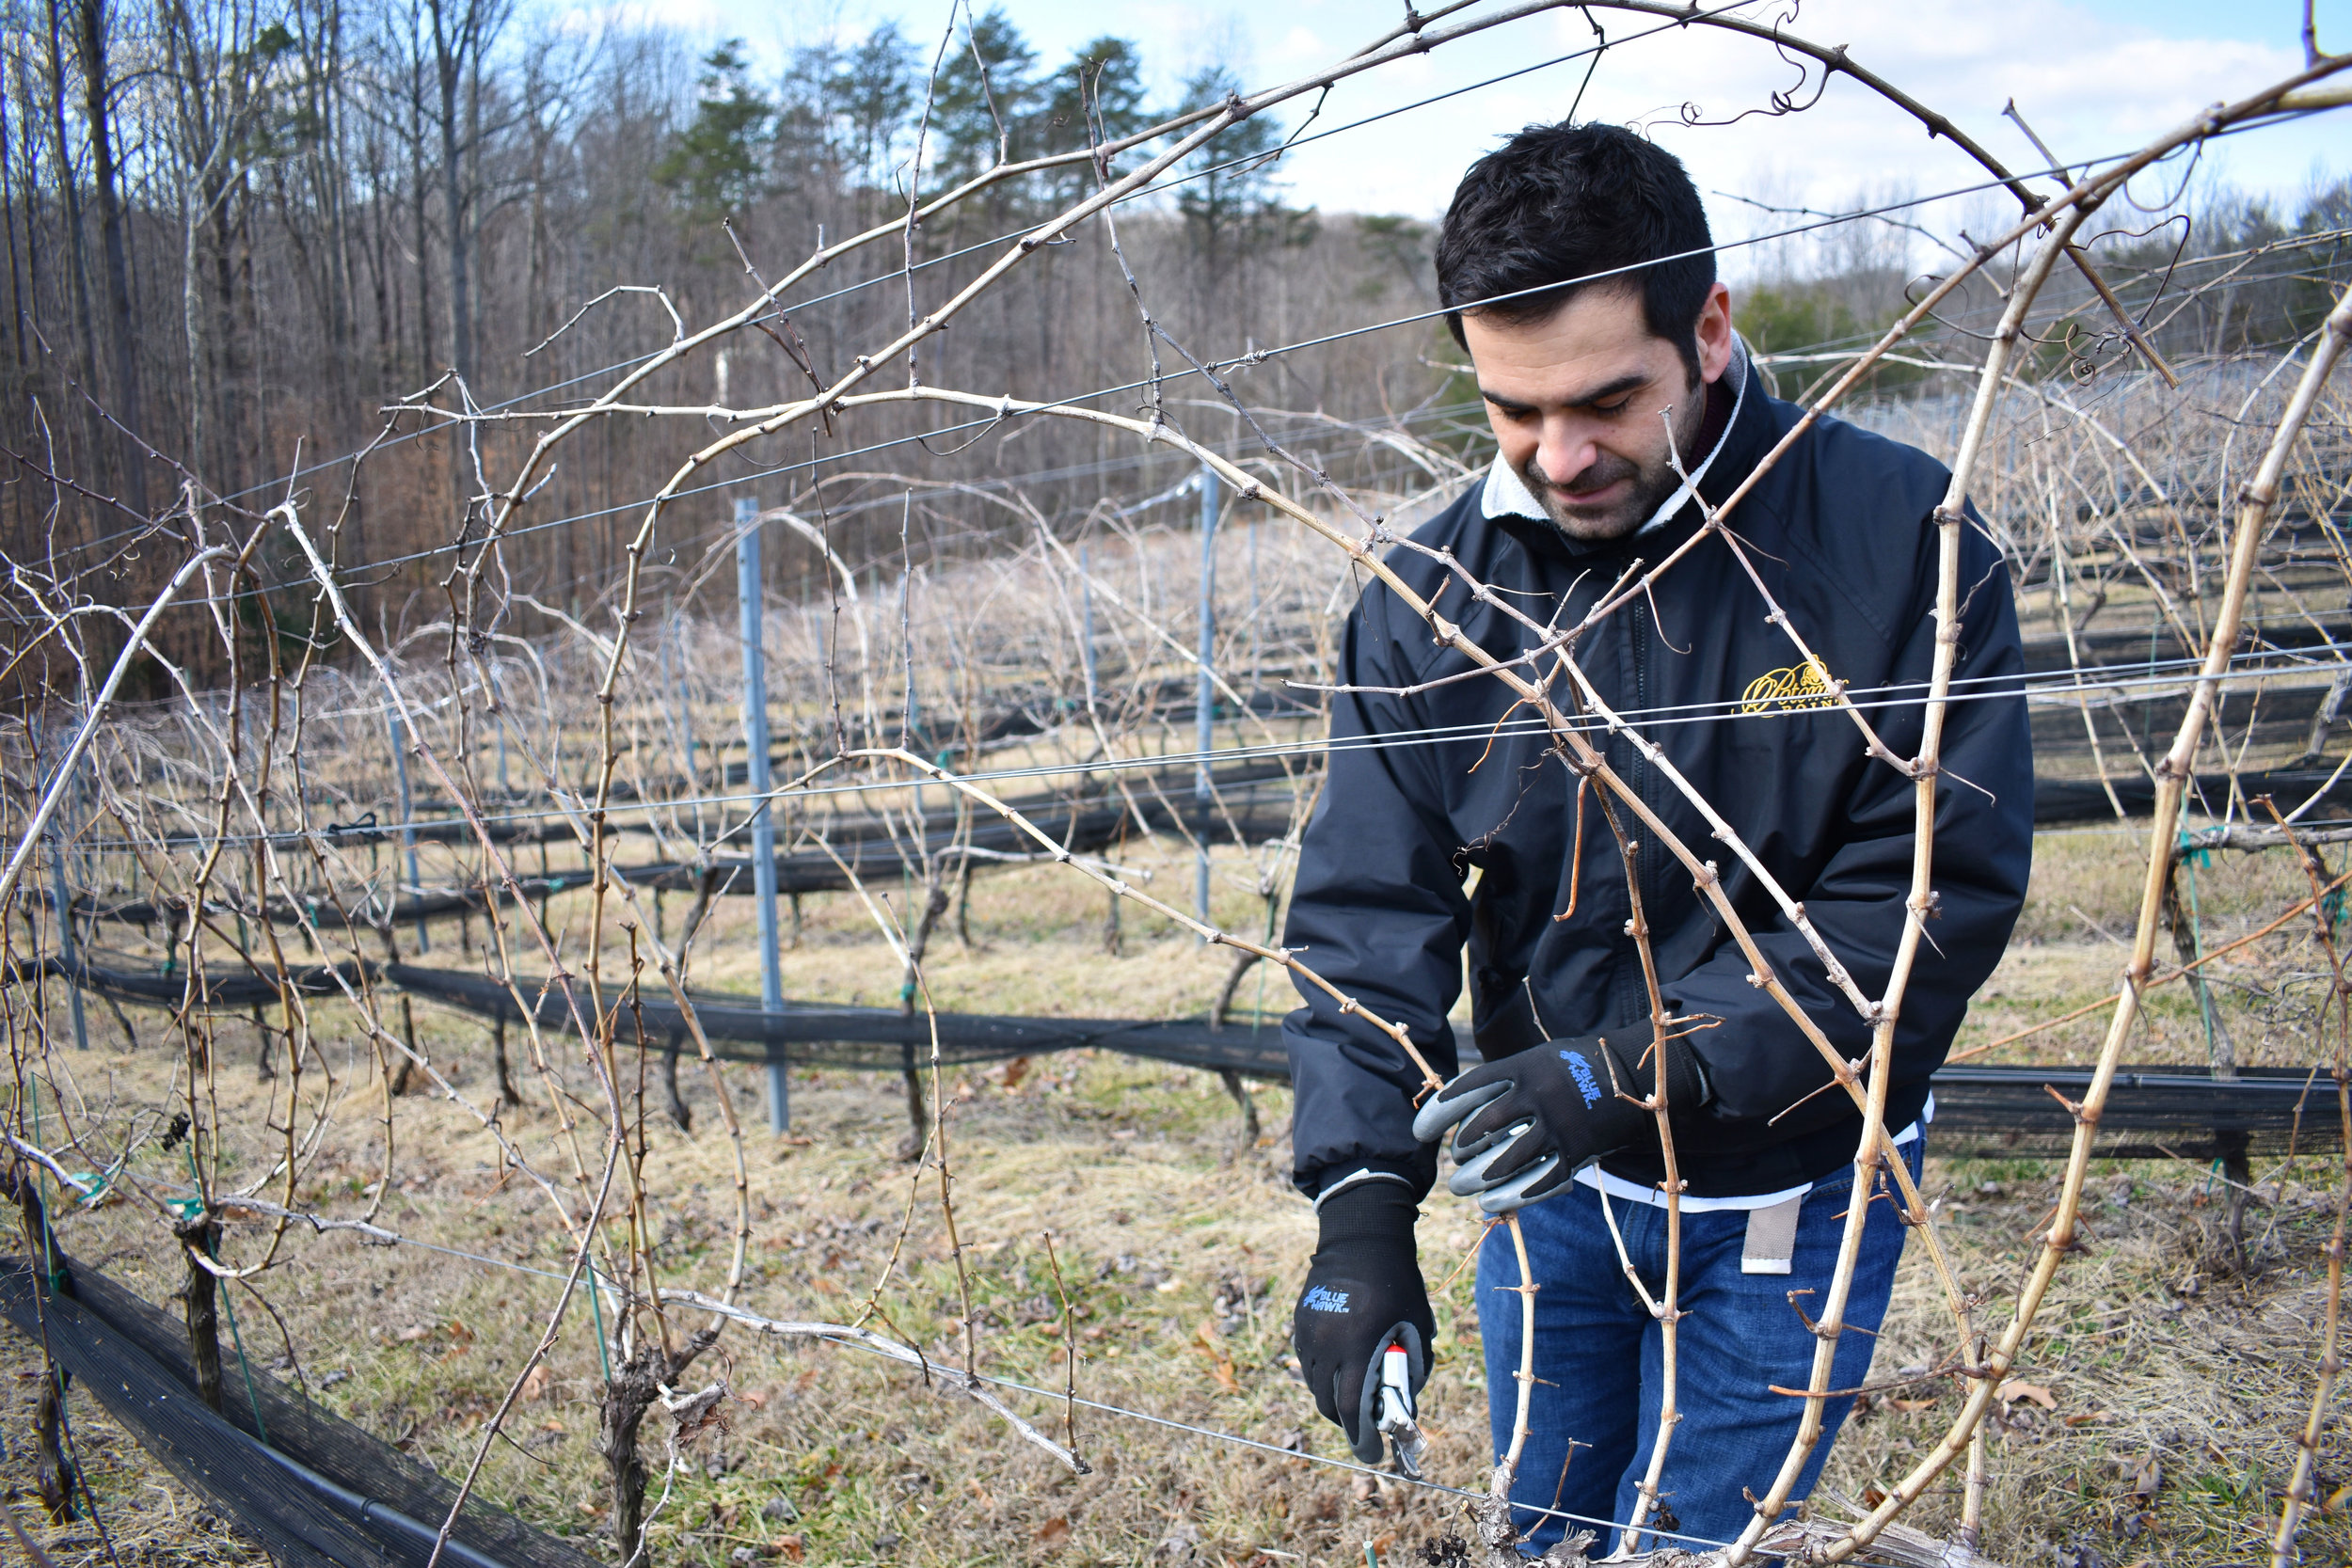 """David Pagan Castaño prunes grapevines at Potomac Point Vineyard and Winery in Stafford, Va., Friday, Feb. 2, 2018. """"The plant now is at hibernation,"""" the head winemaker said.(Lindsey Leake/American University)"""